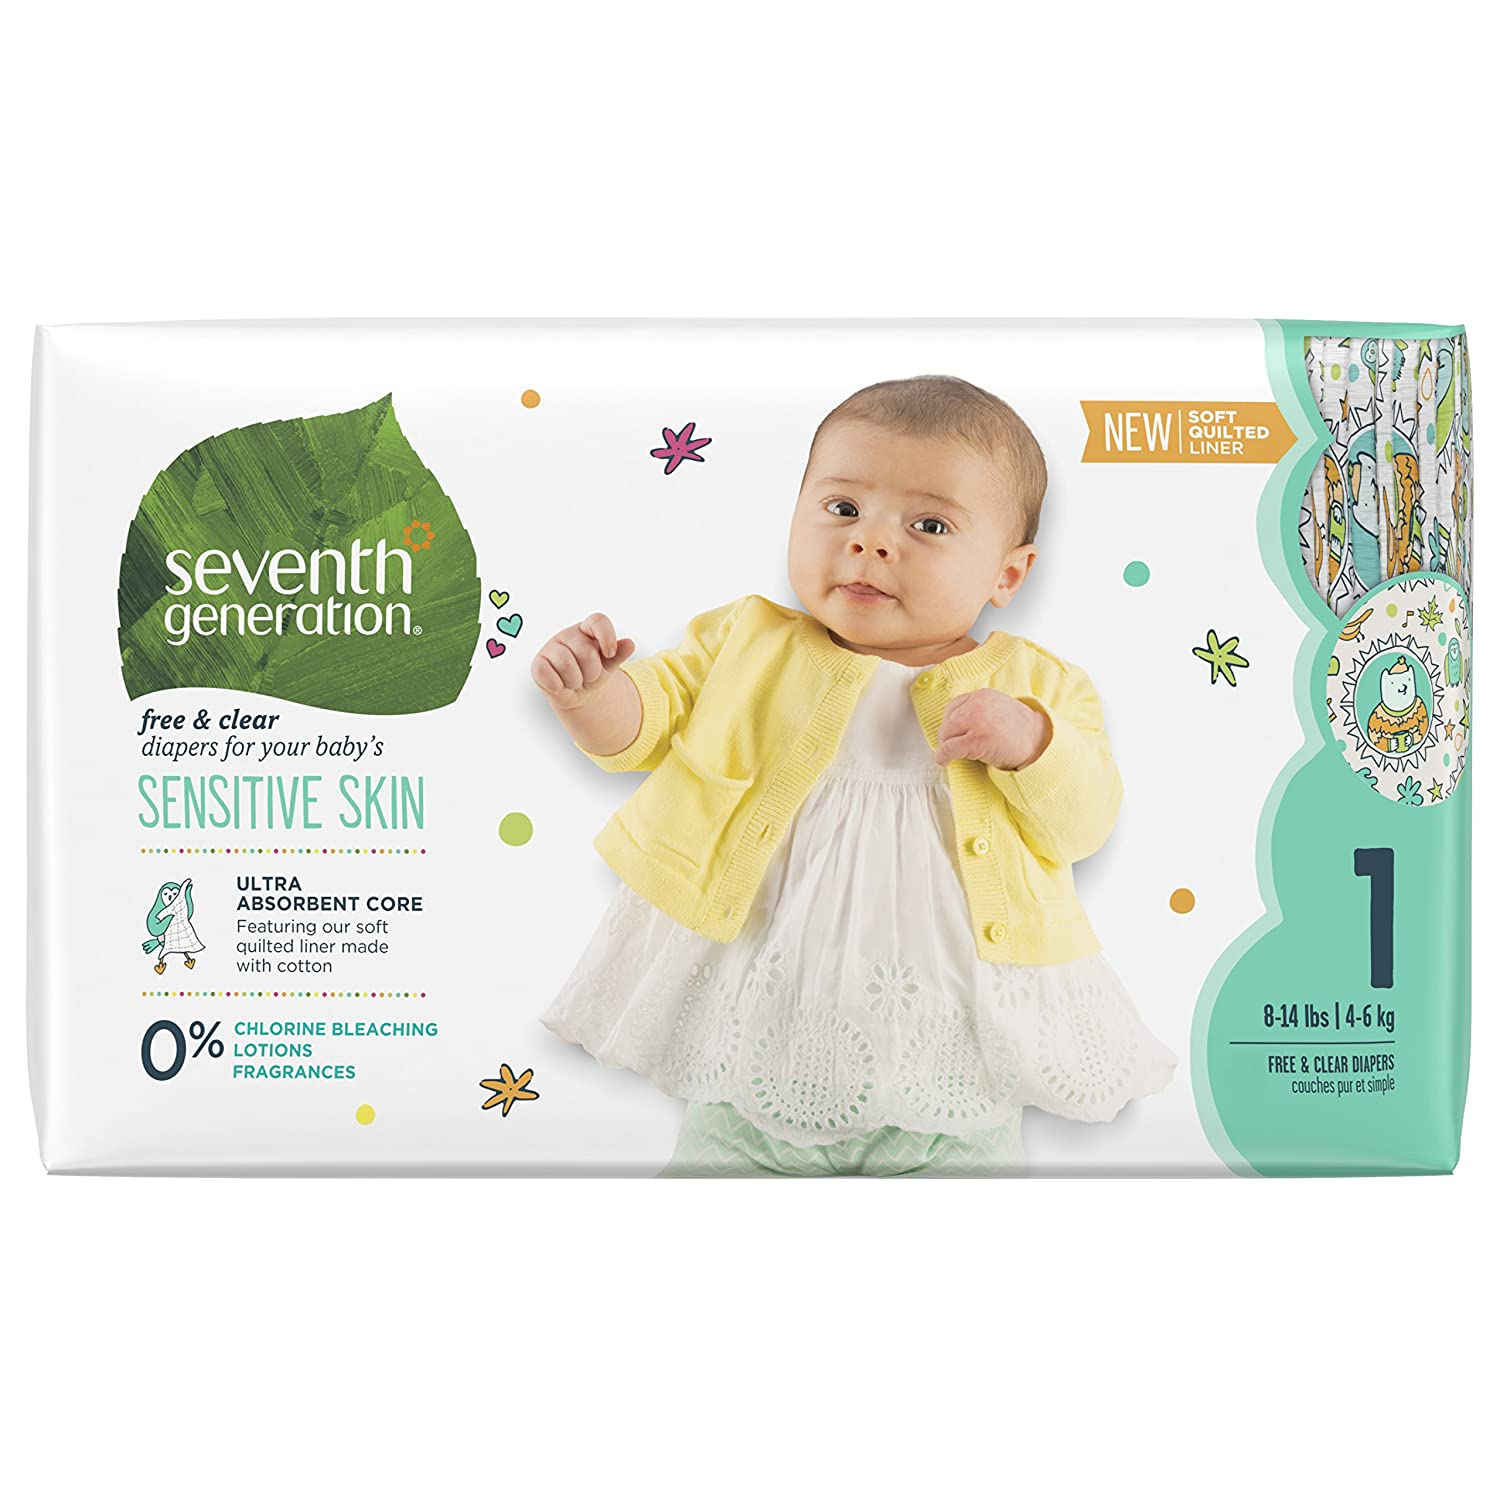 Seventh Generation Baby Diapers, Free and Clear for Sensitive Skin, with Animal Prints, Size 3, 155 Count (Packaging May Vary)